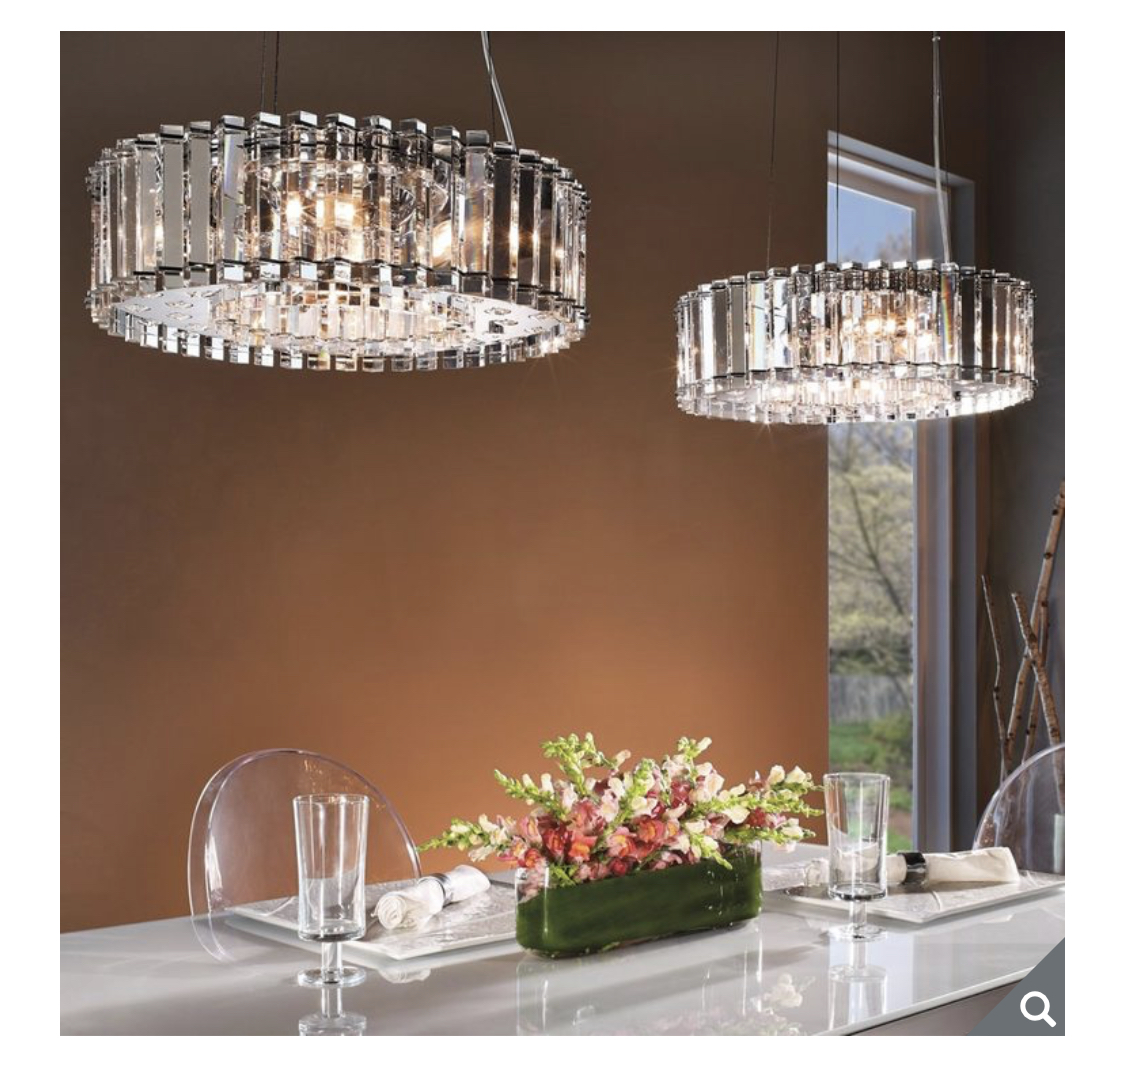 Kichler Crystal Skye Six Light Pendant Ceiling Light in Crystal and Chrome